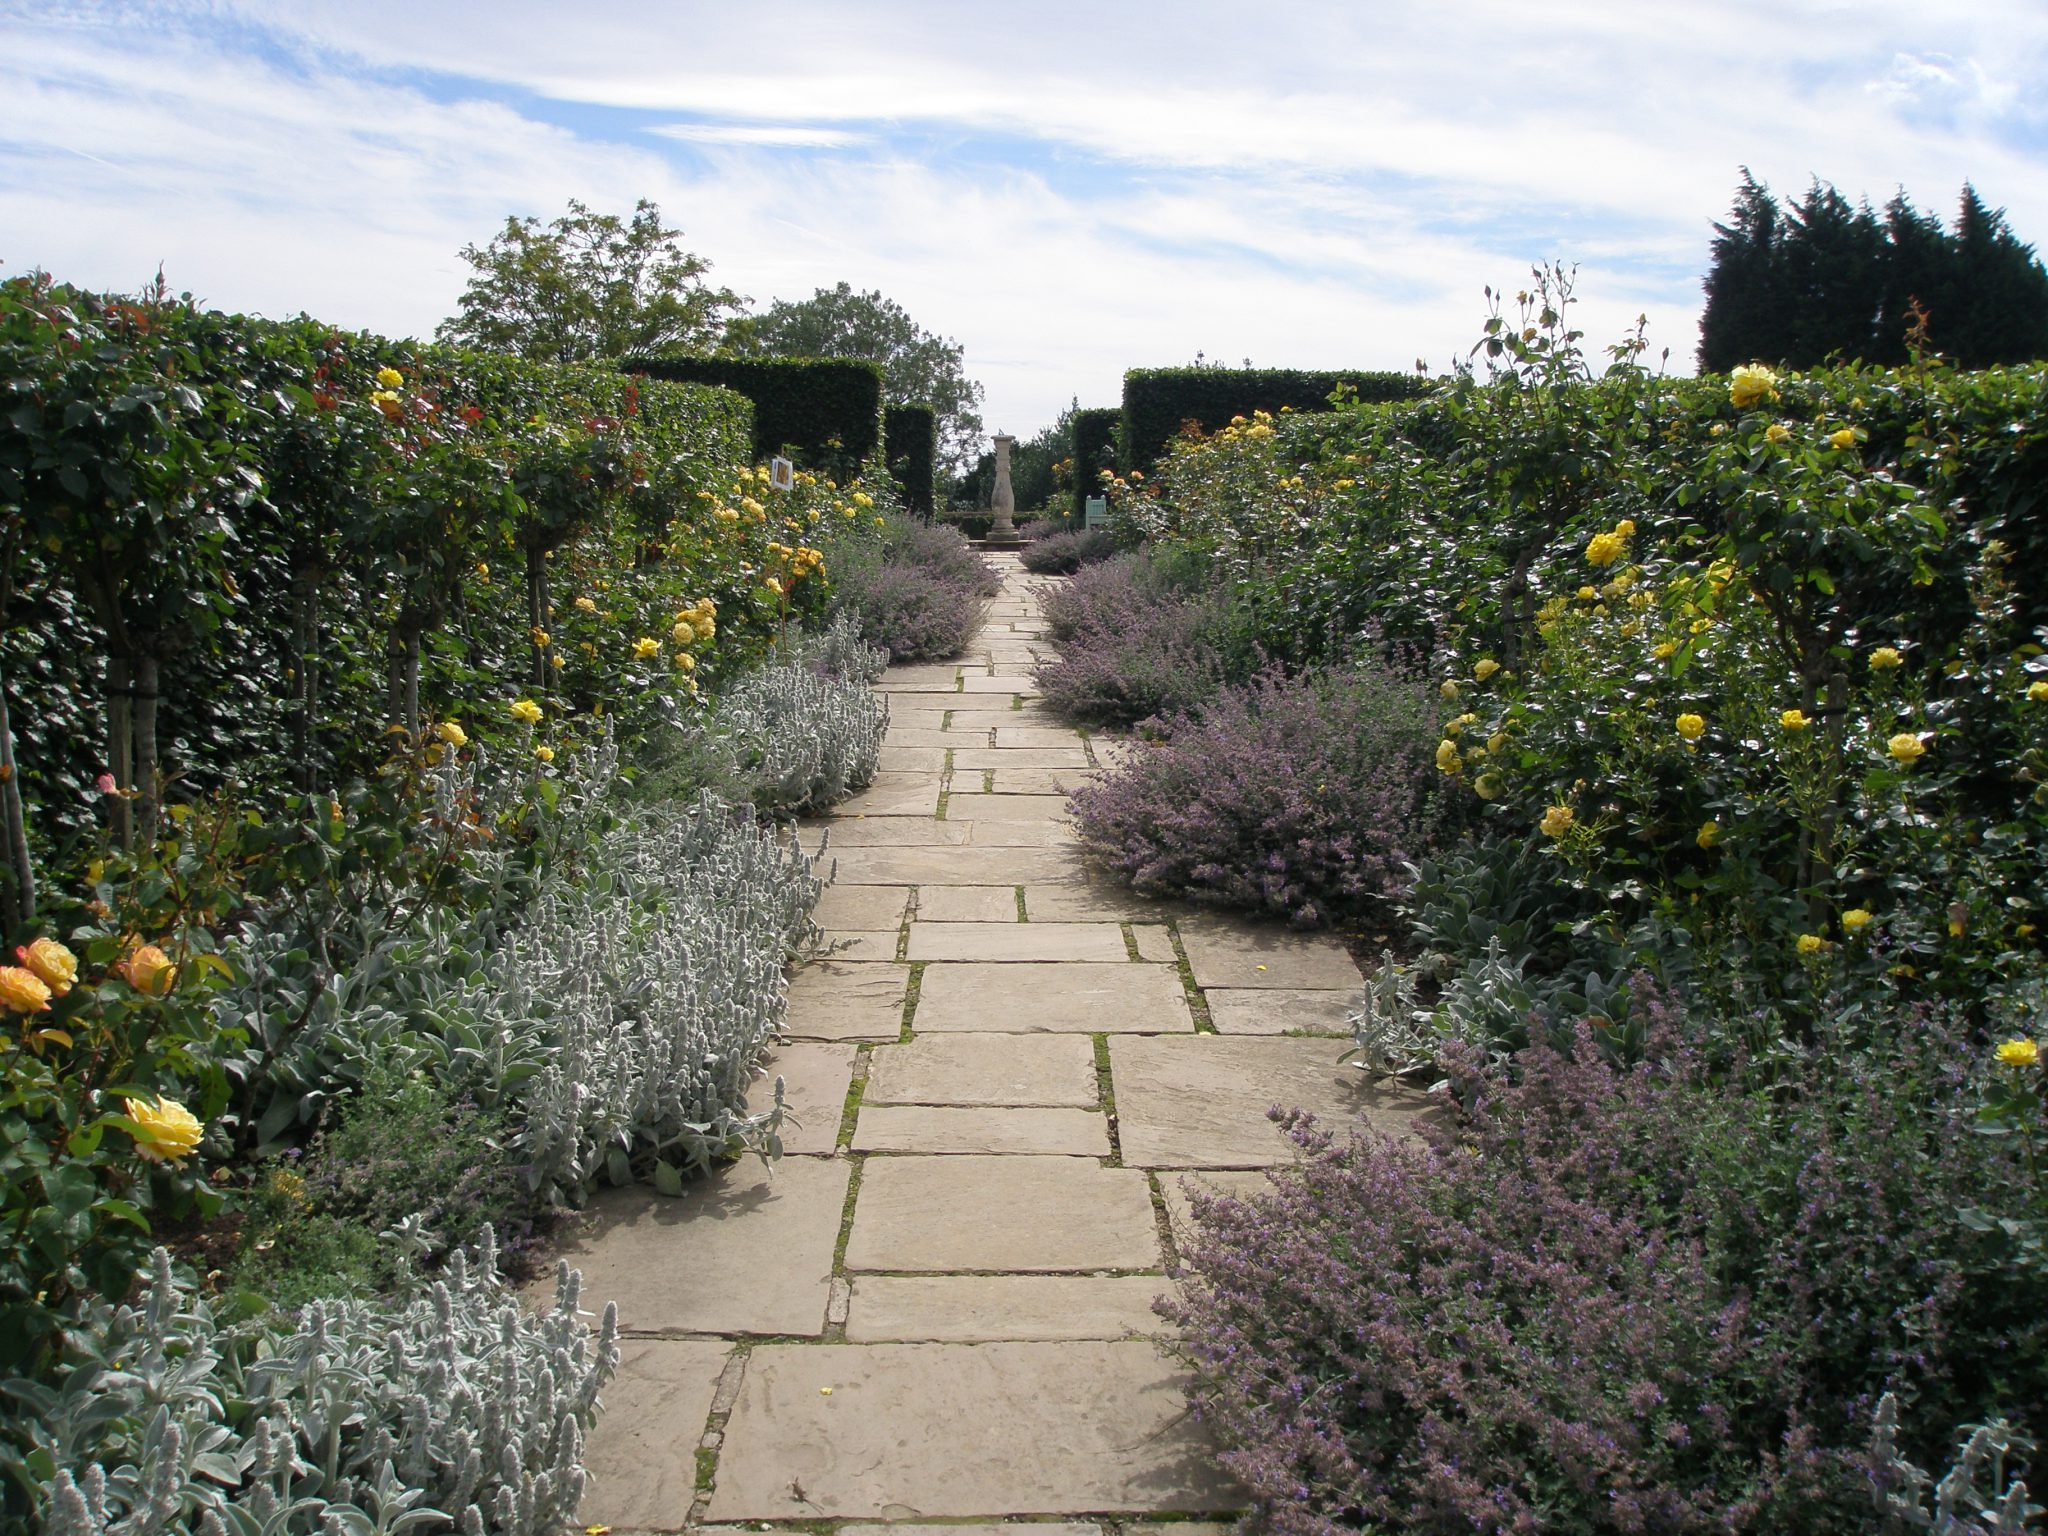 We're inside the Golden Rose Avenue, which runs east-west in the garden. The beds contain yellow and gold flowering roses, planted on each side in two parallel rows. Lambs ears and lavender billow out across the paving stones.